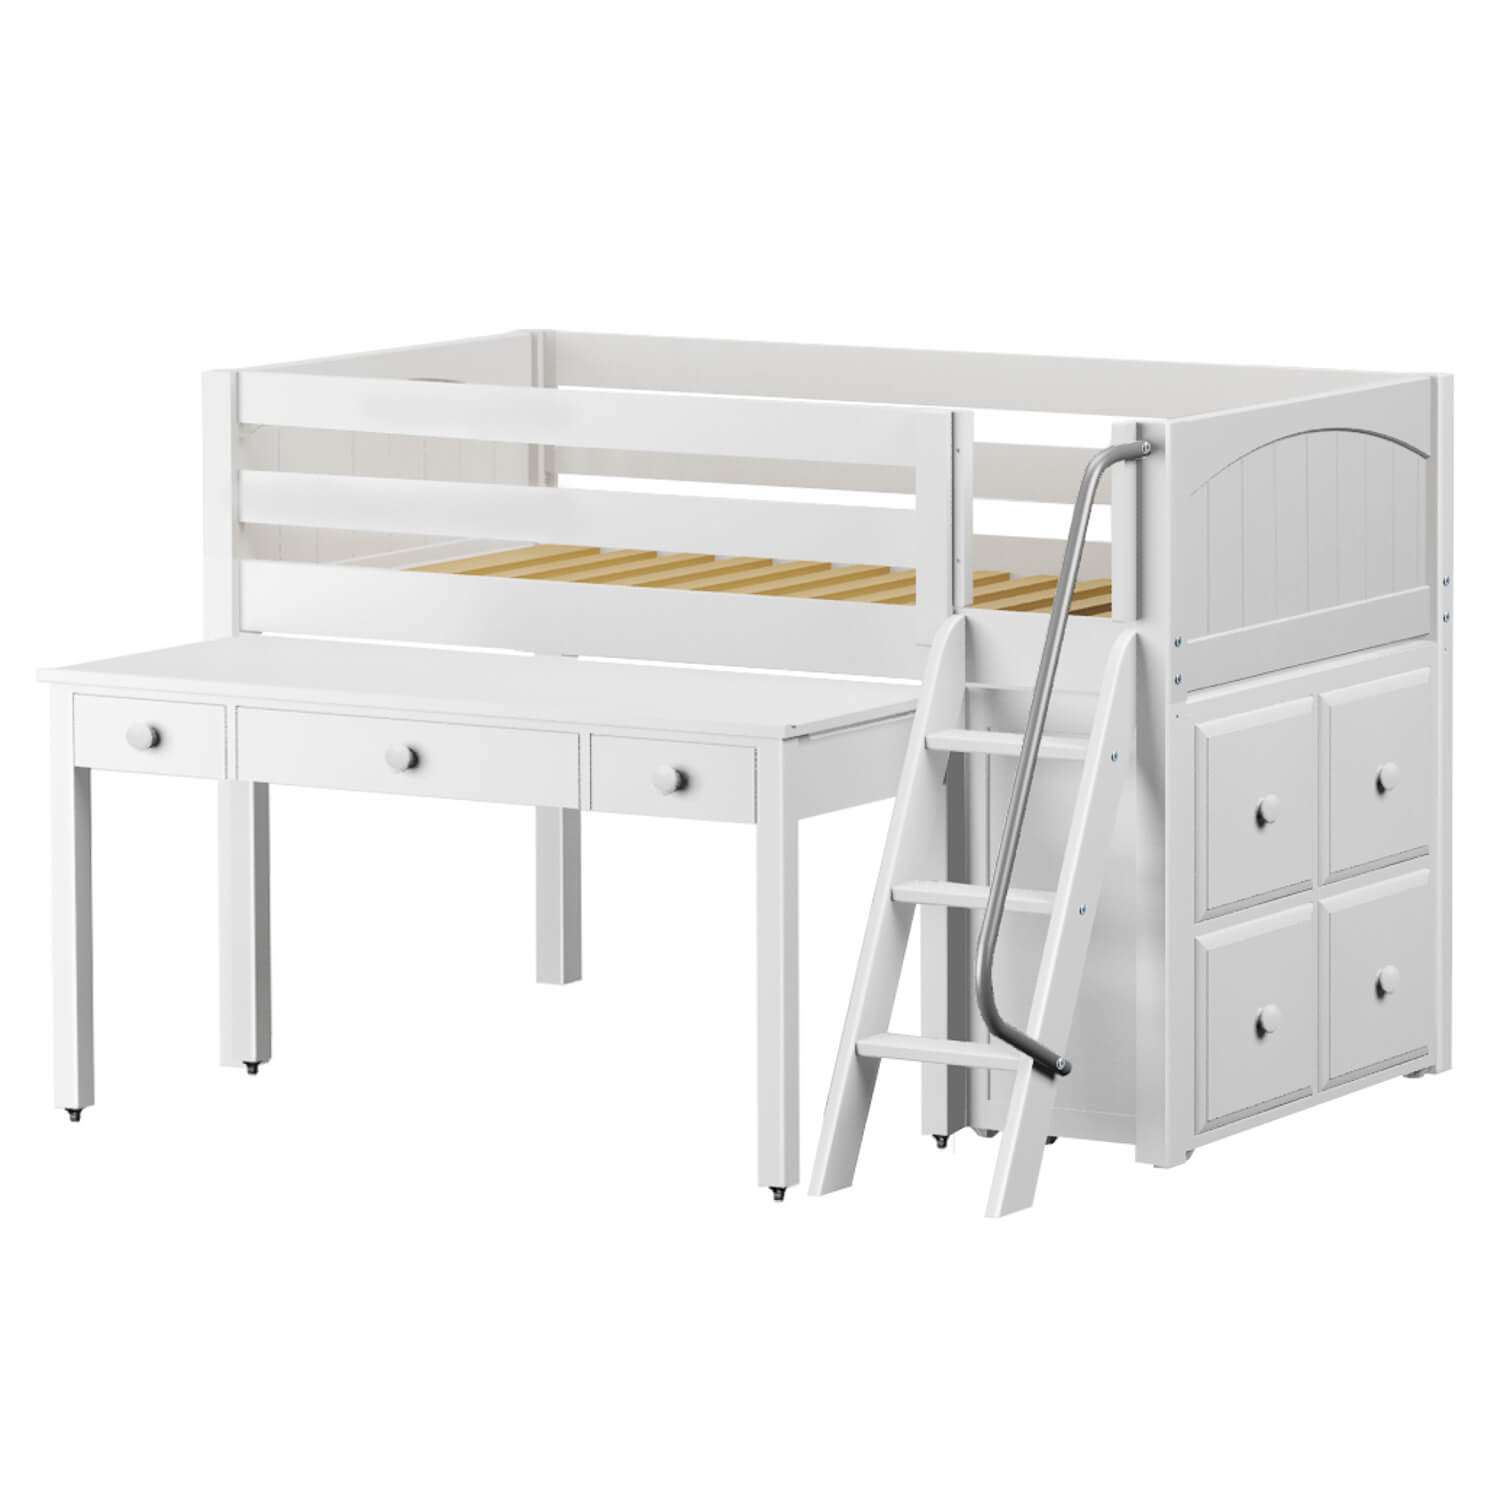 children-bunk-beds-loft-bed-with-desk.jpg